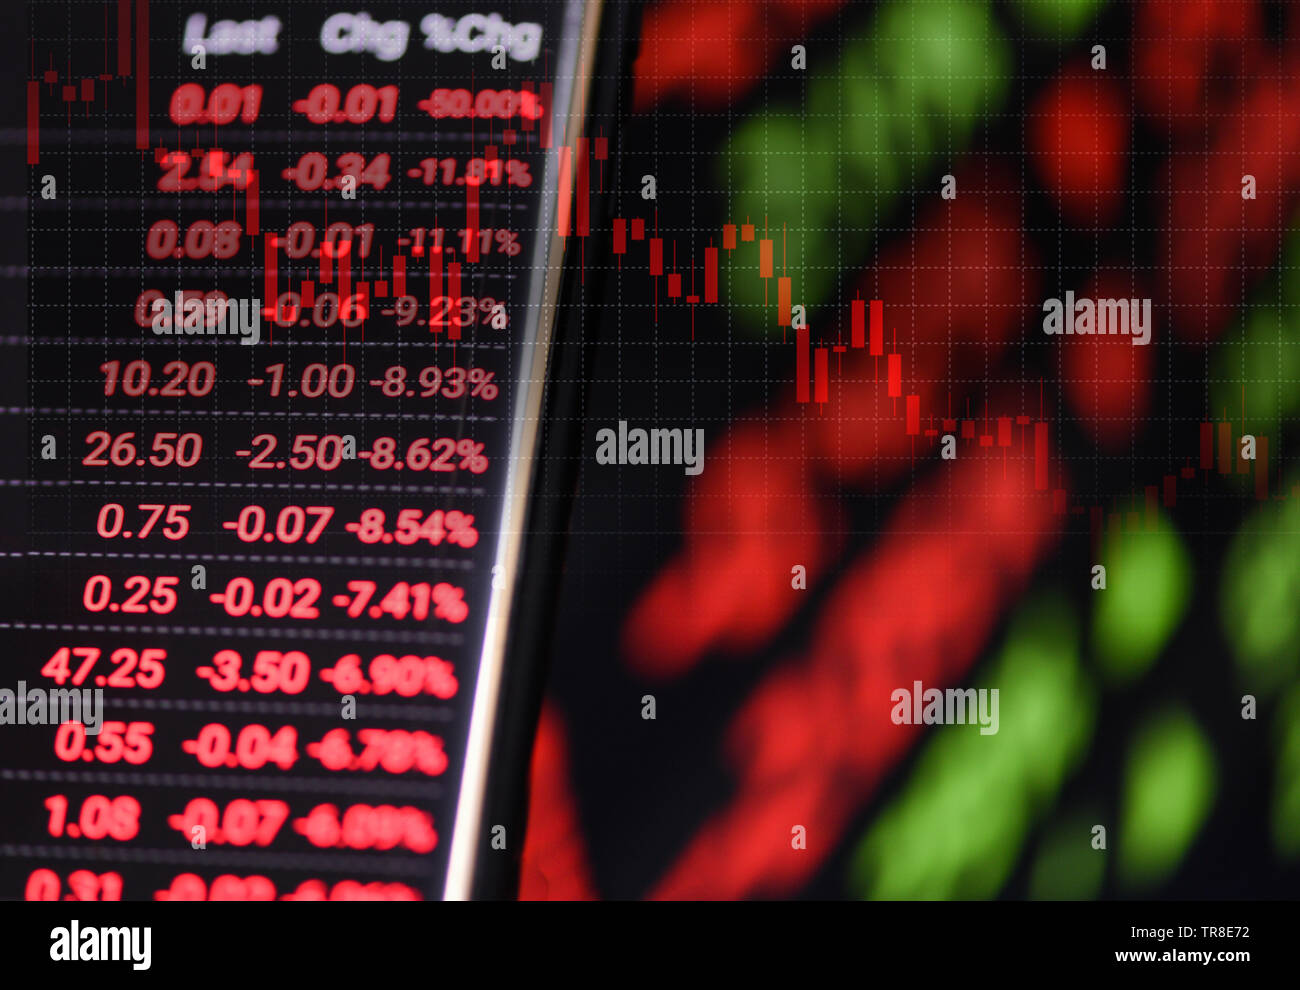 Stock crisis red price drop down chart fall on screen / Stock market exchange analysis graph business and finance money losing moving economic inflati - Stock Image